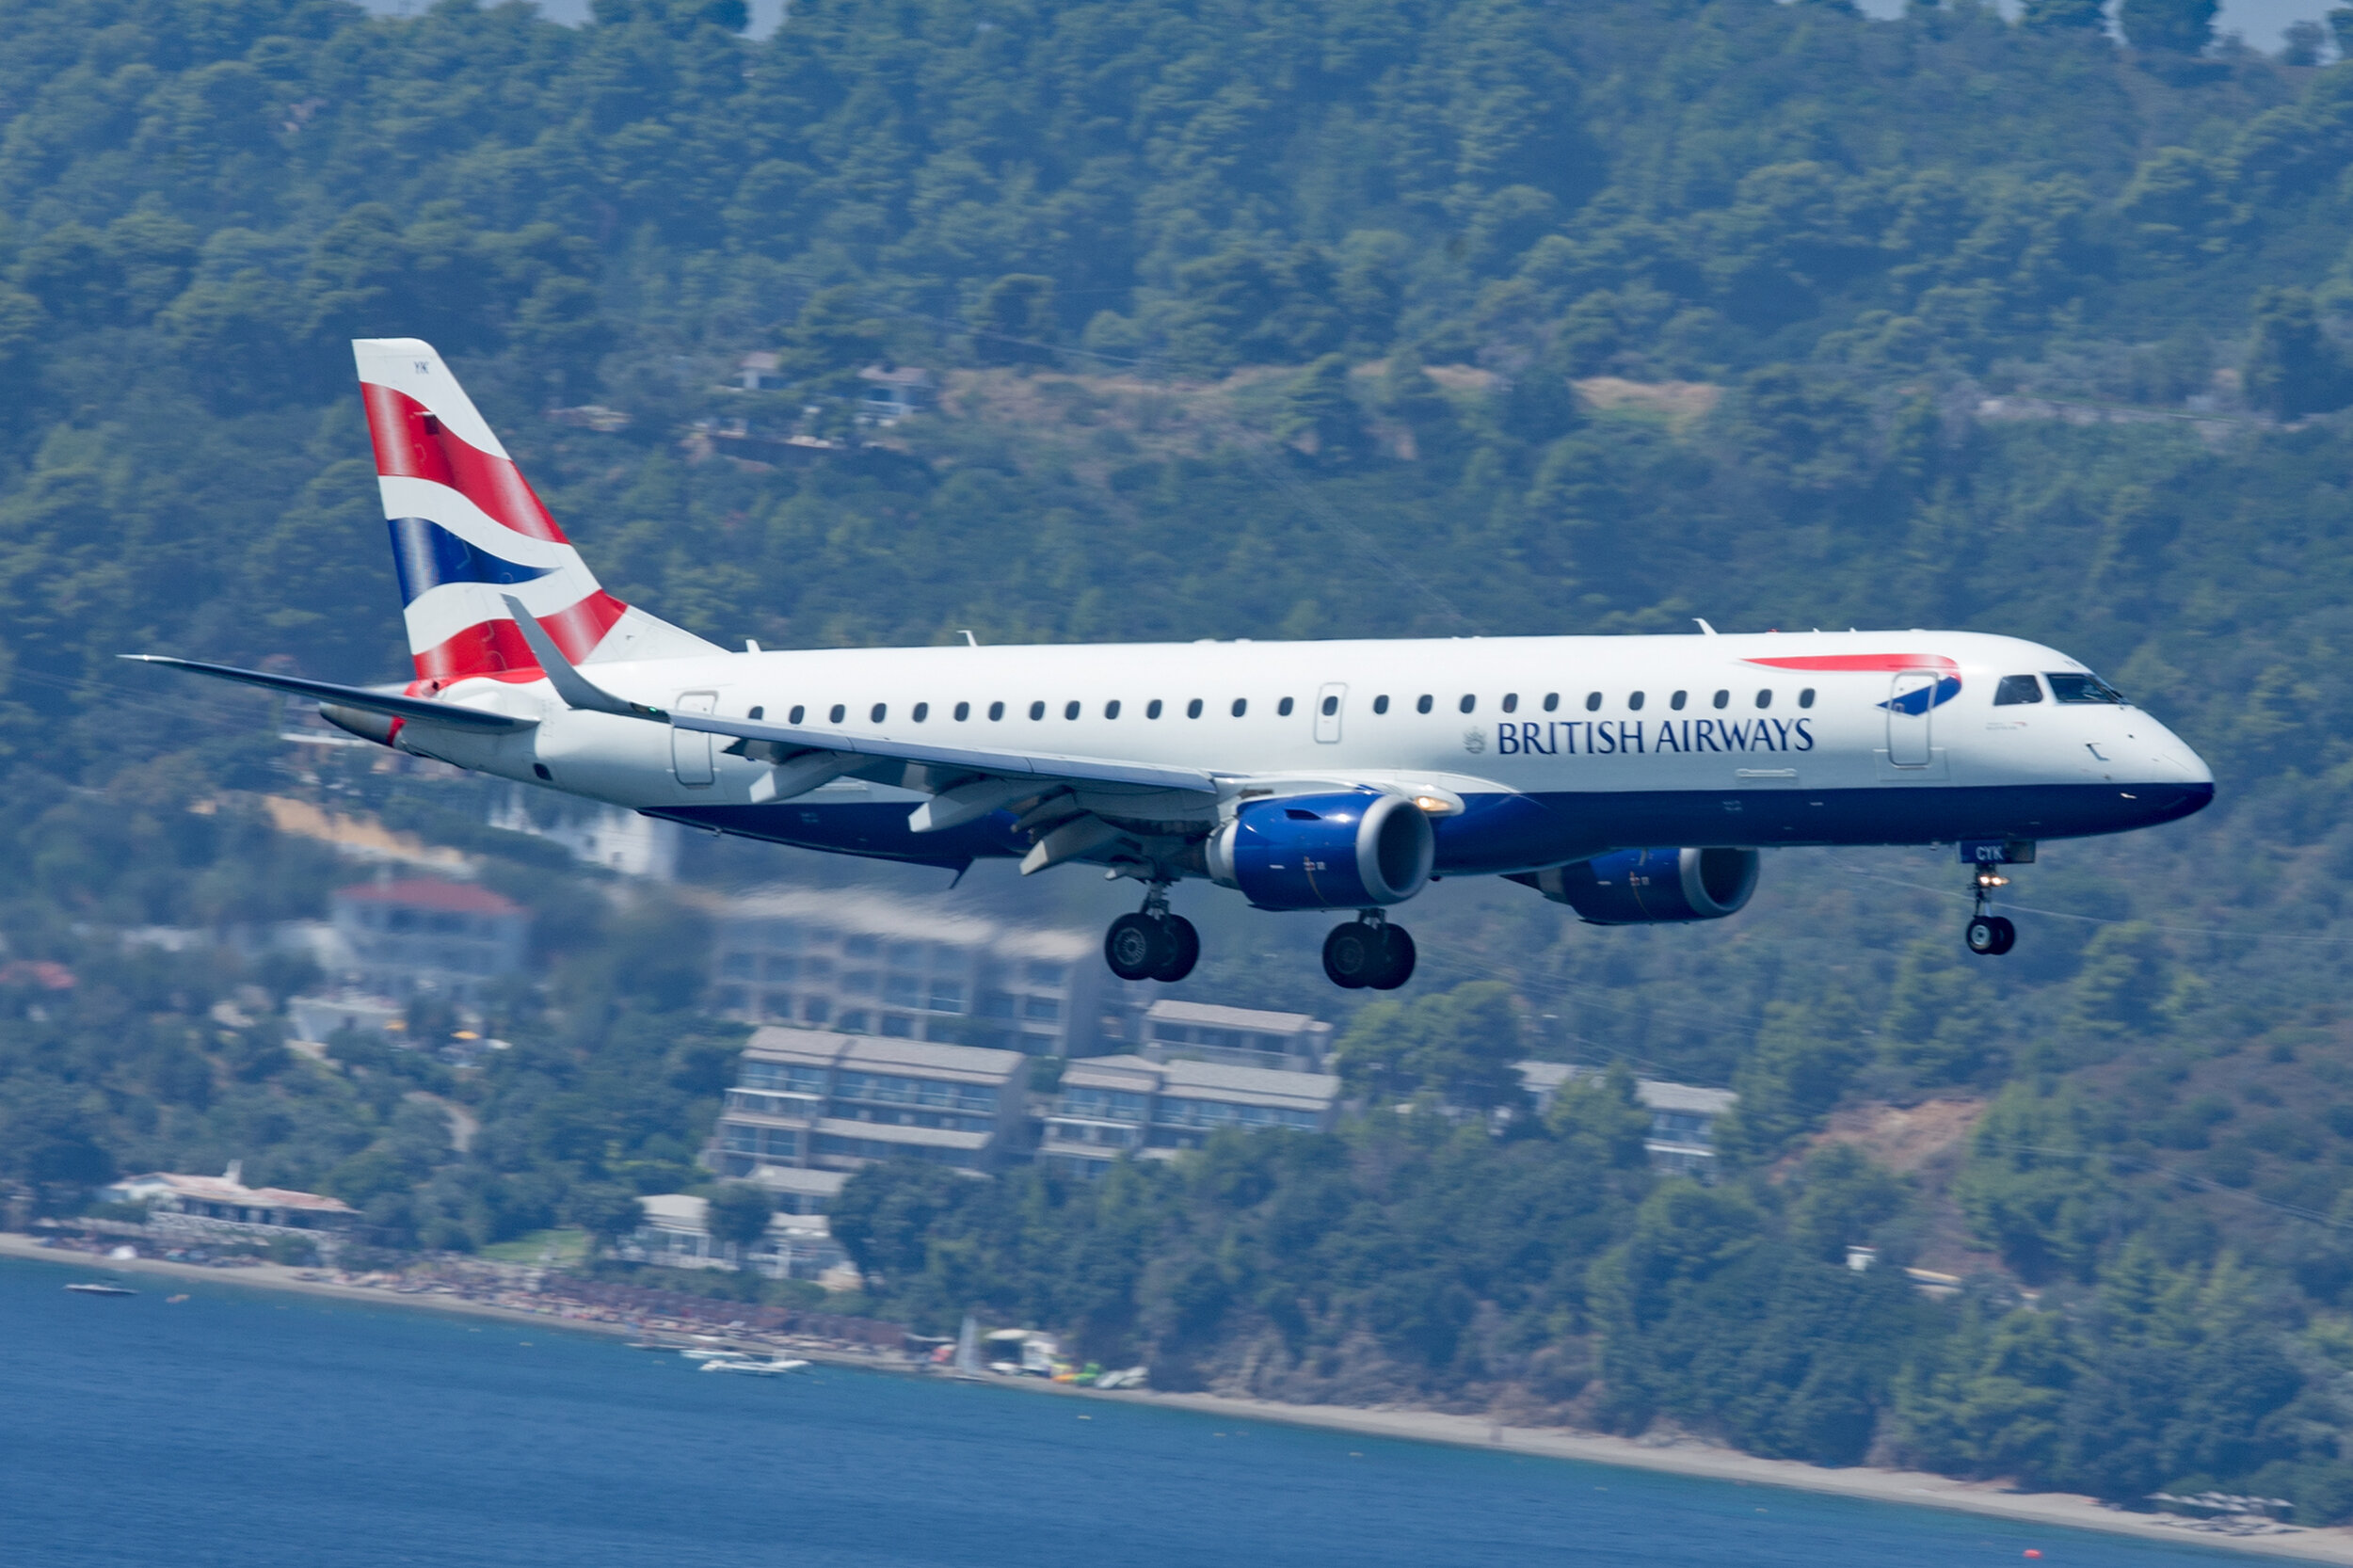 BA City Flyer Express operate the Embraer 190 on scheduled services from London City to Skiathos. The Kassandra Bay hotel can be seen behind the aircraft. Peter H